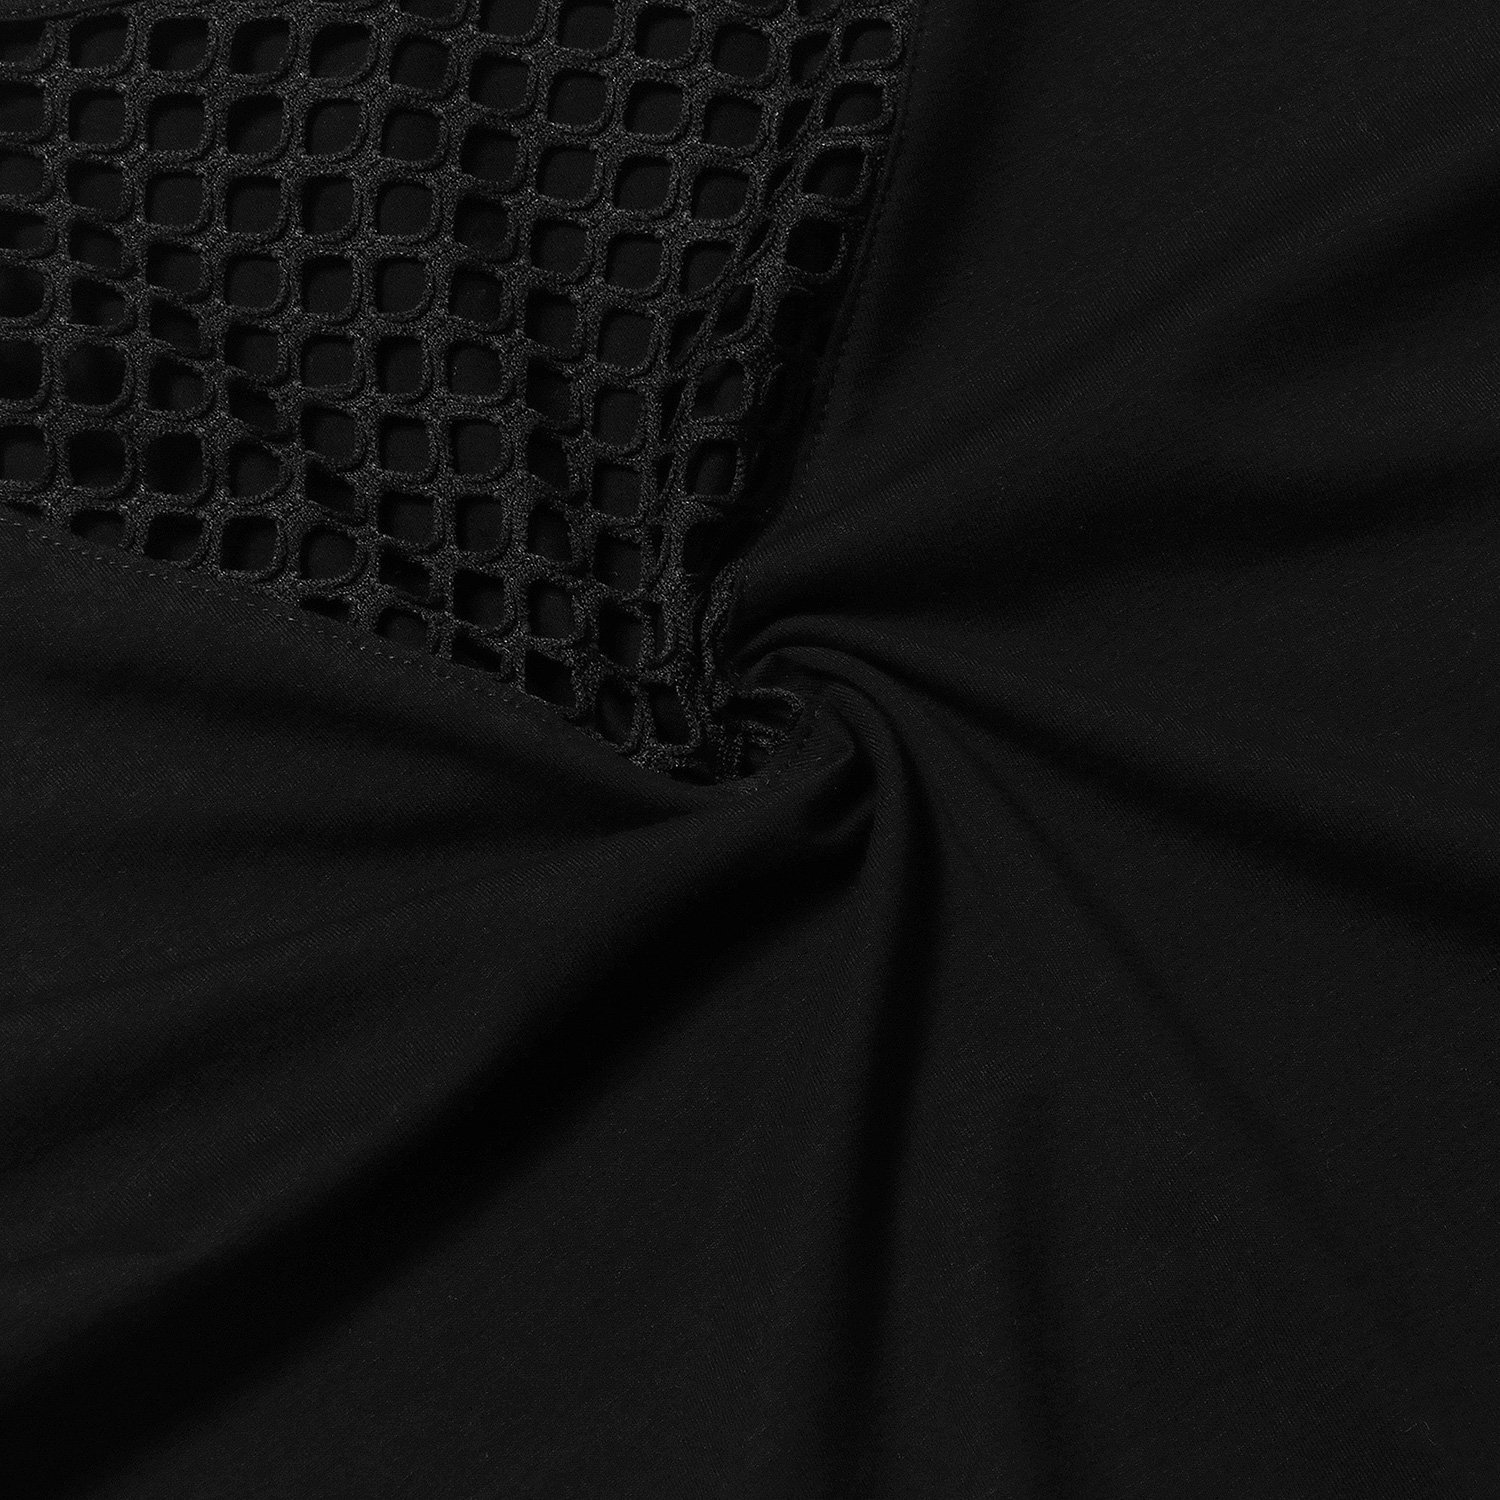 short sleeve crop tops for women Black Large by Perfashion (Image #7)